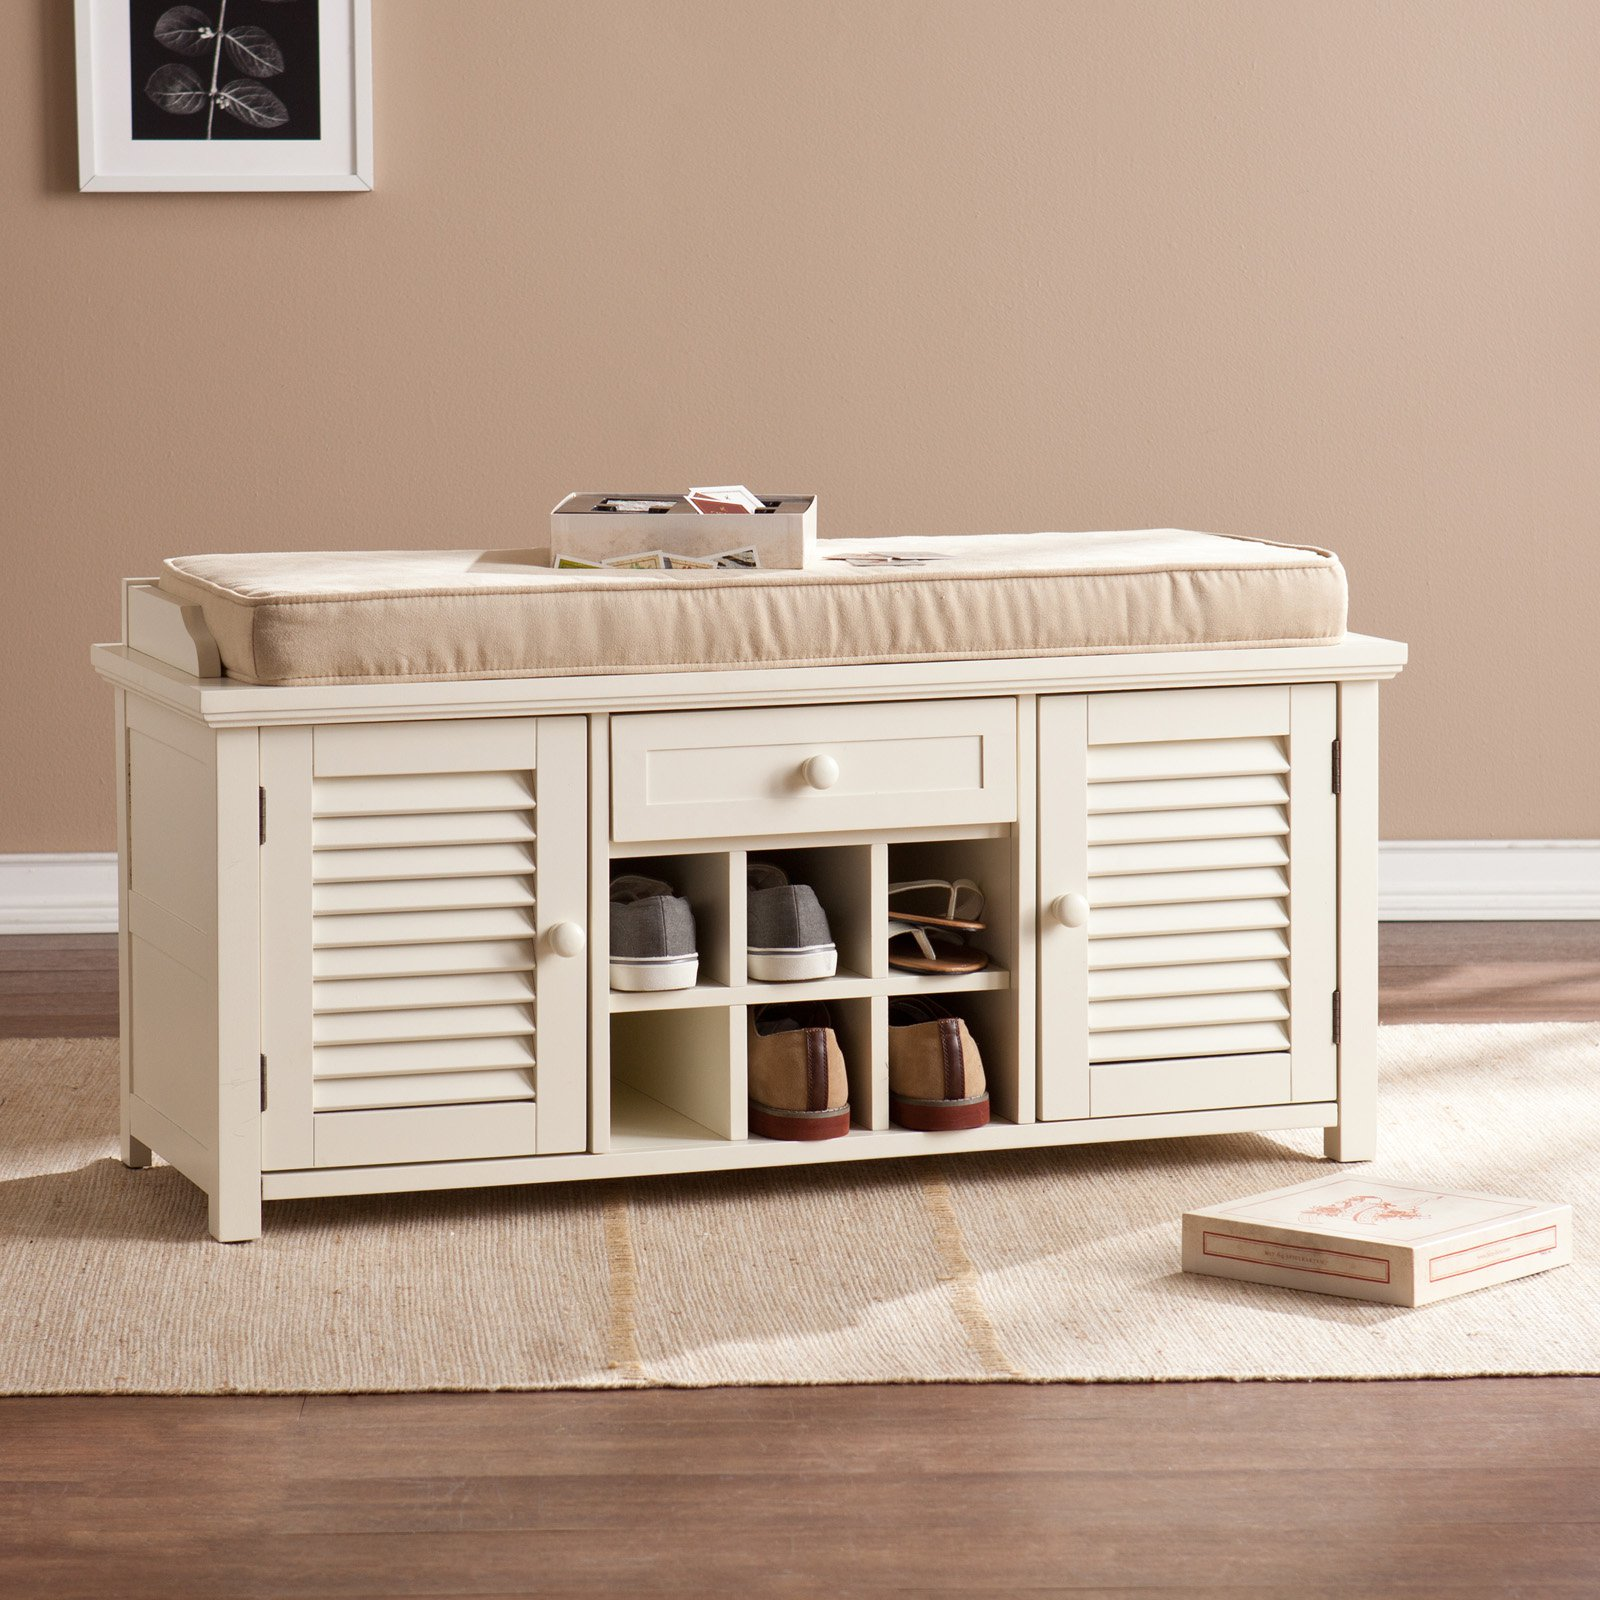 Southern Enterprises Antebellum Shoe Storage Bench   Antique White    Walmart.com